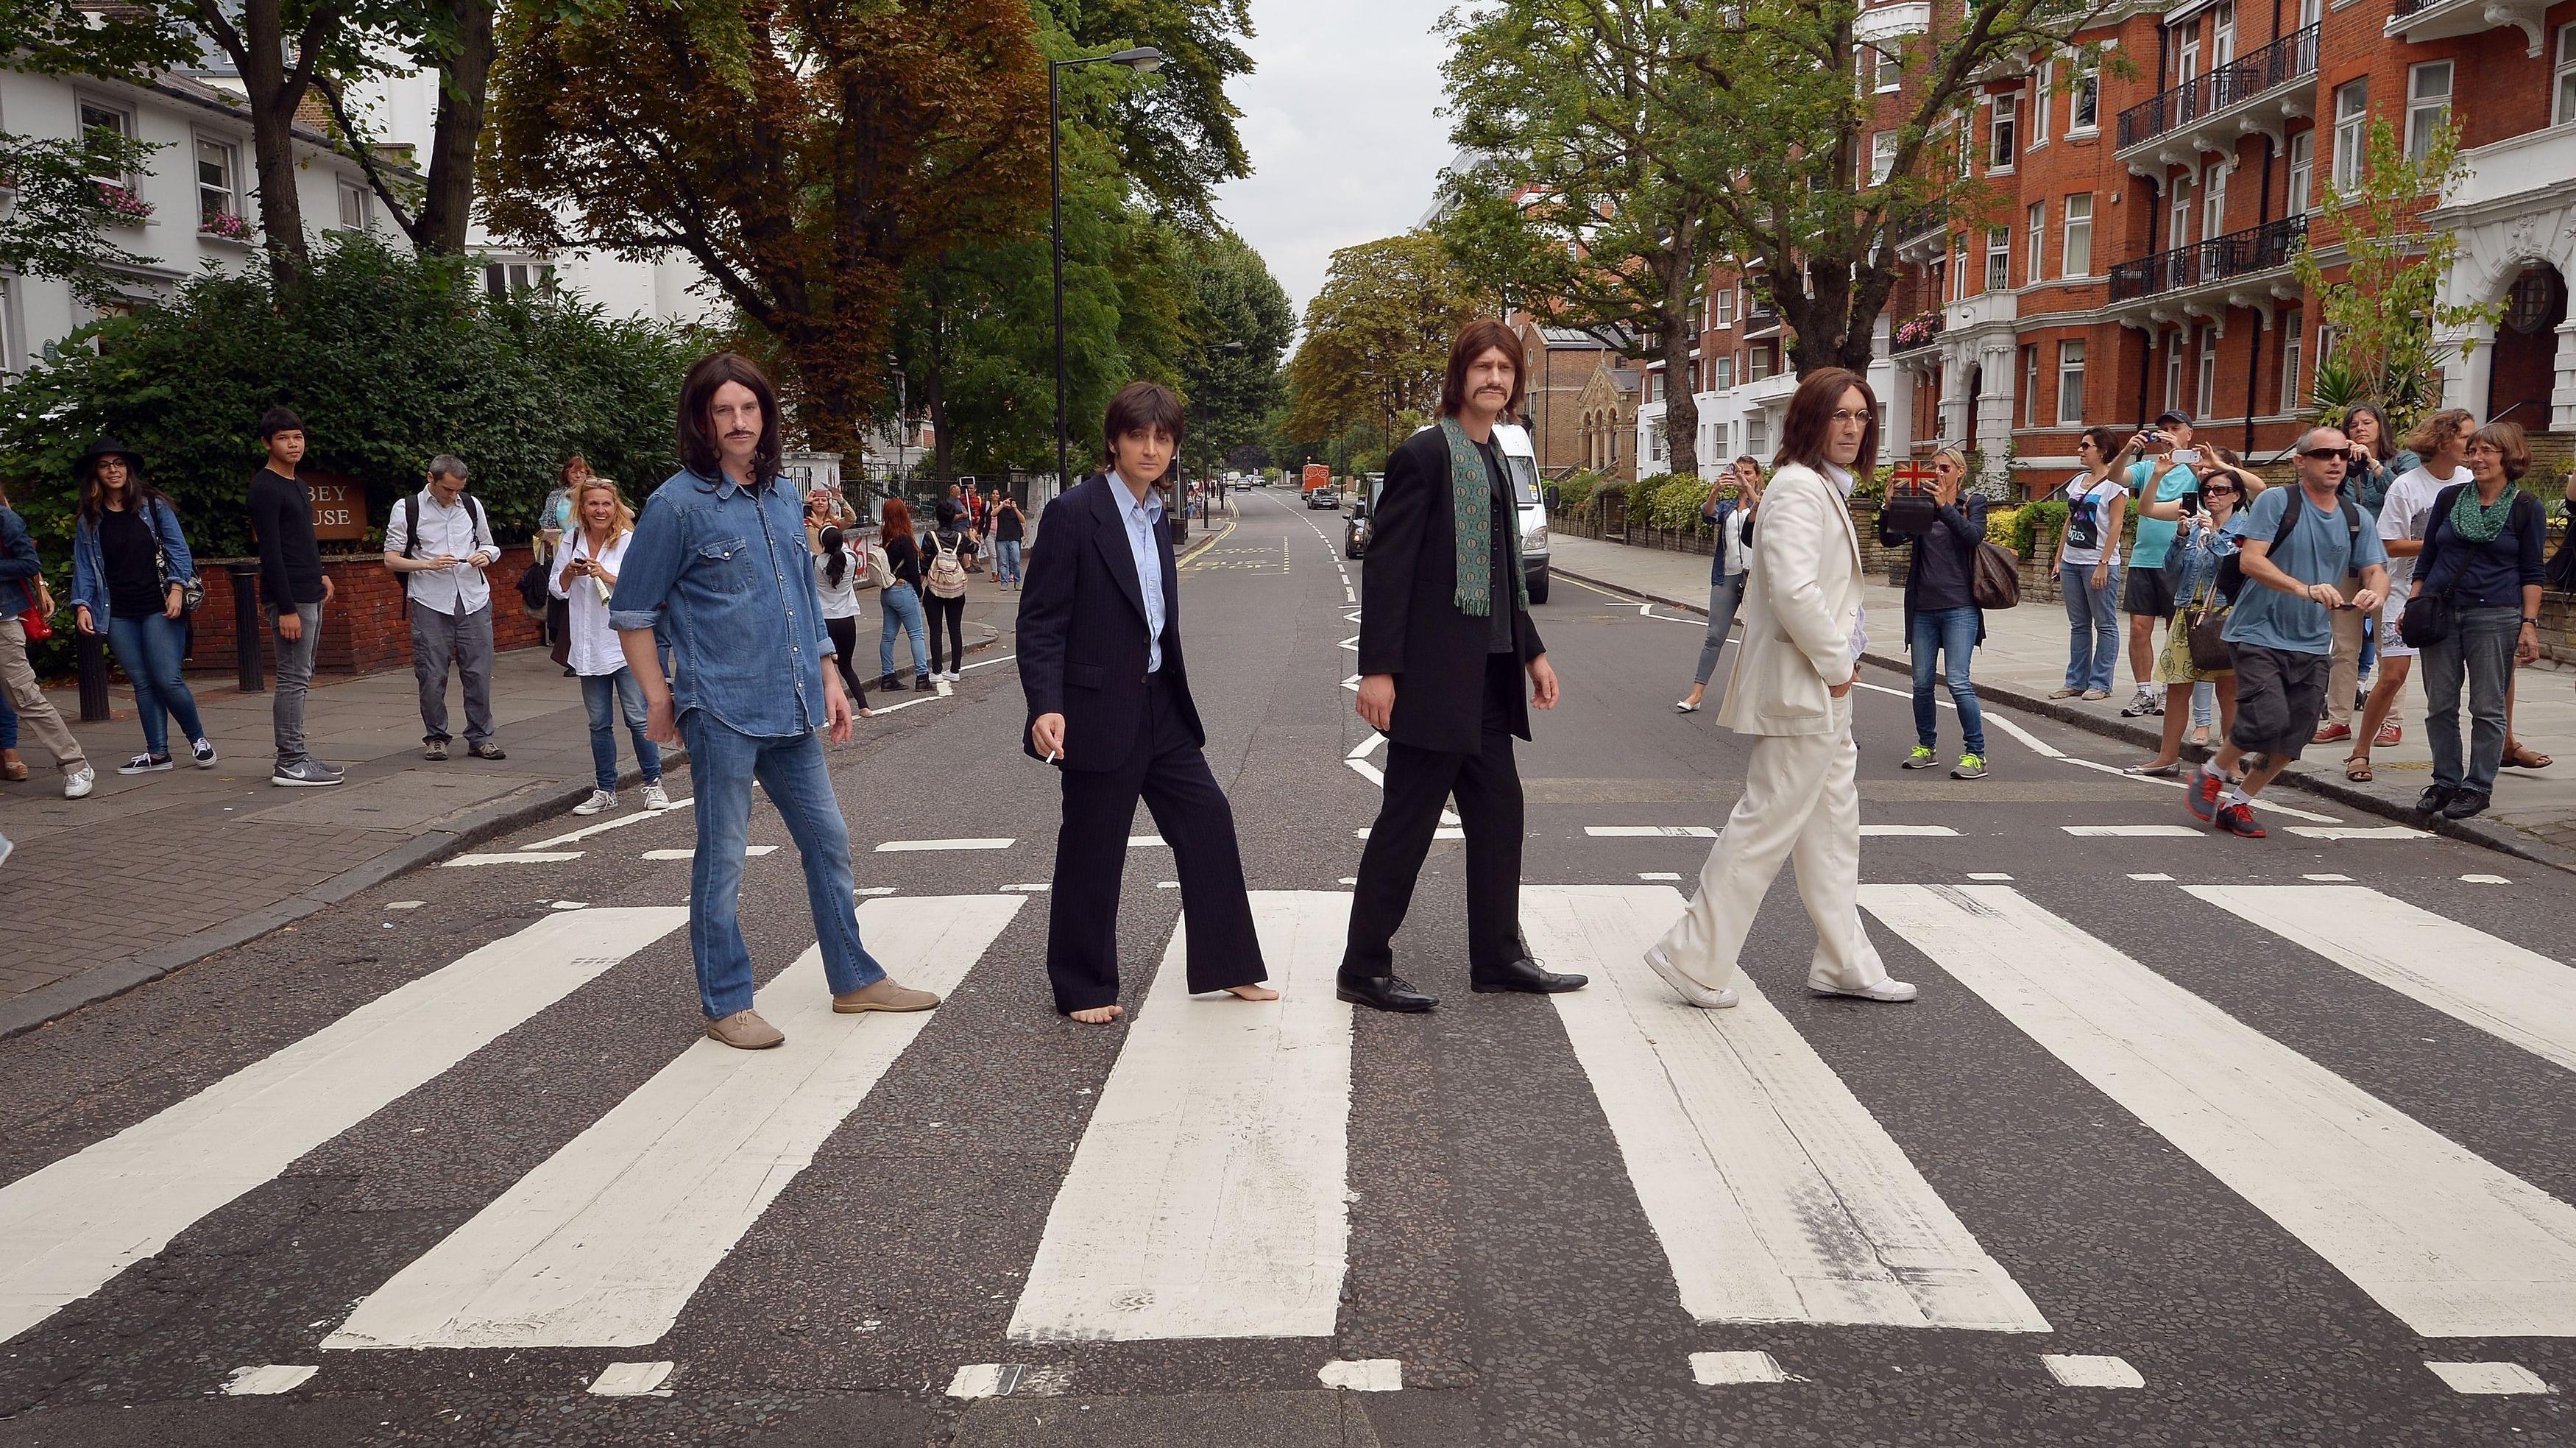 Safety Fears Over Iconic Beatles Abbey Road Crossing